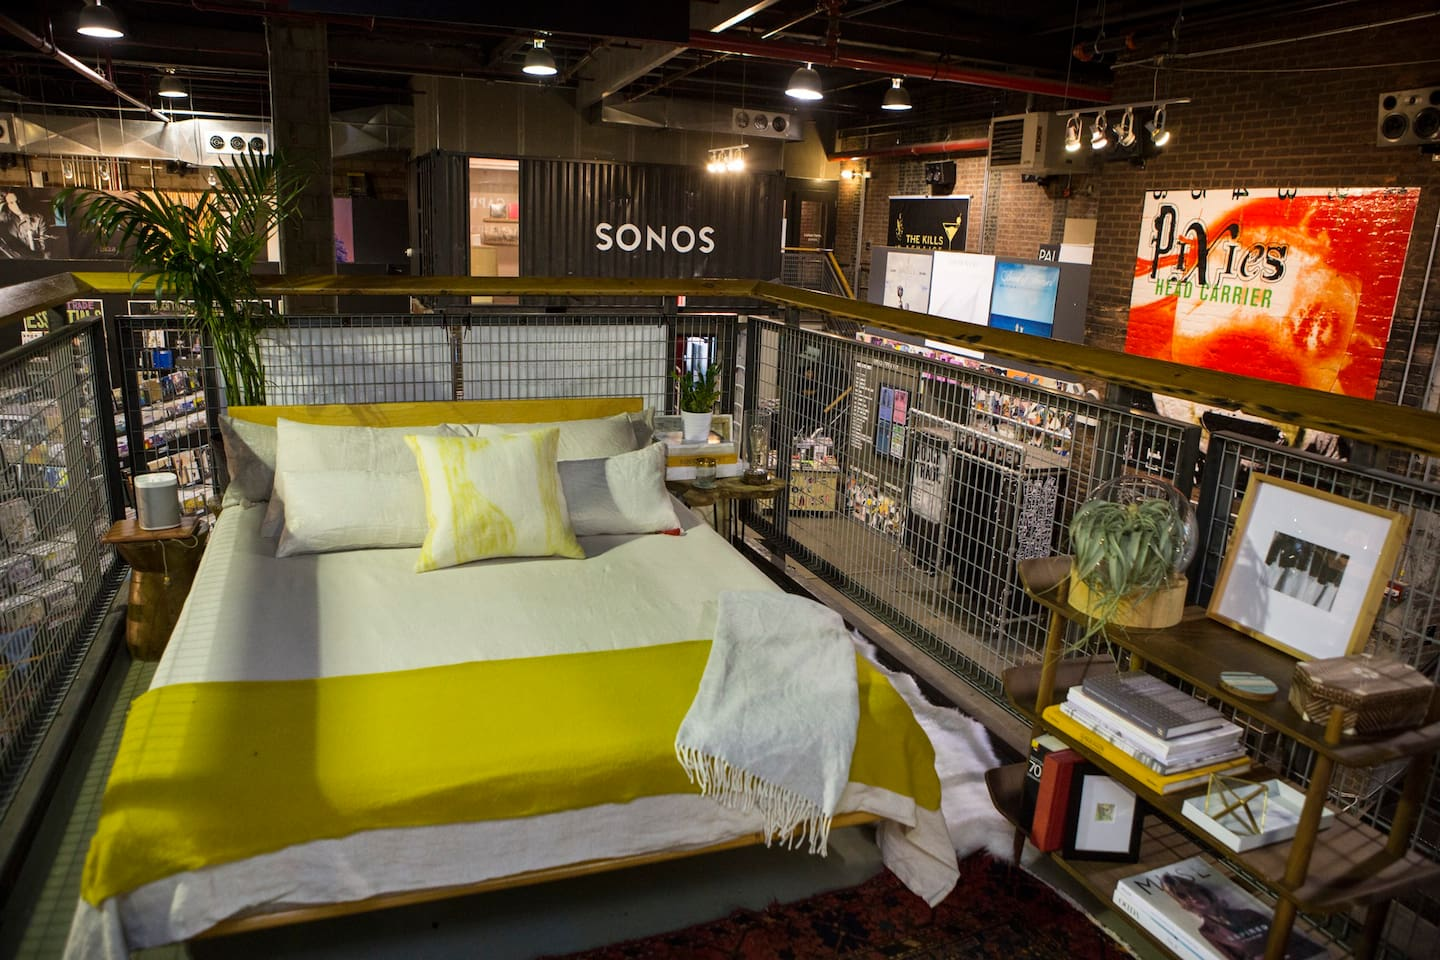 Sonos Listening Room at Rough Trade